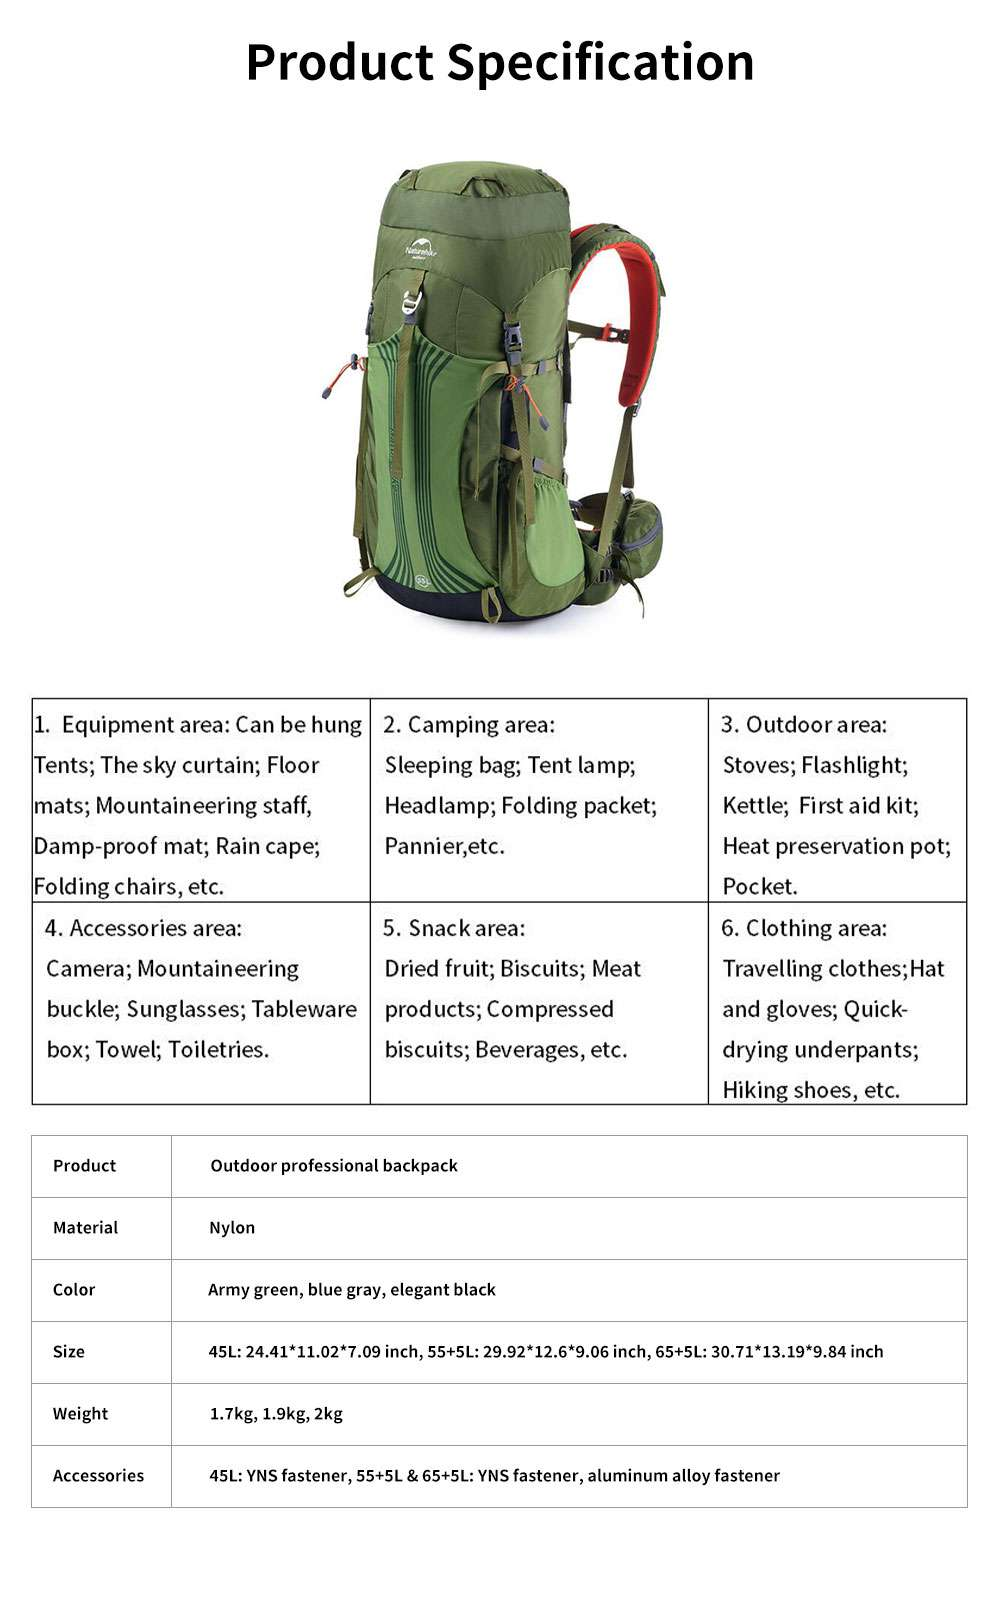 NH Outdoor Professional Backpack Unisex Multifunctional Travel Hiking Bag 65L Large Capacity Mountain Backpack 6